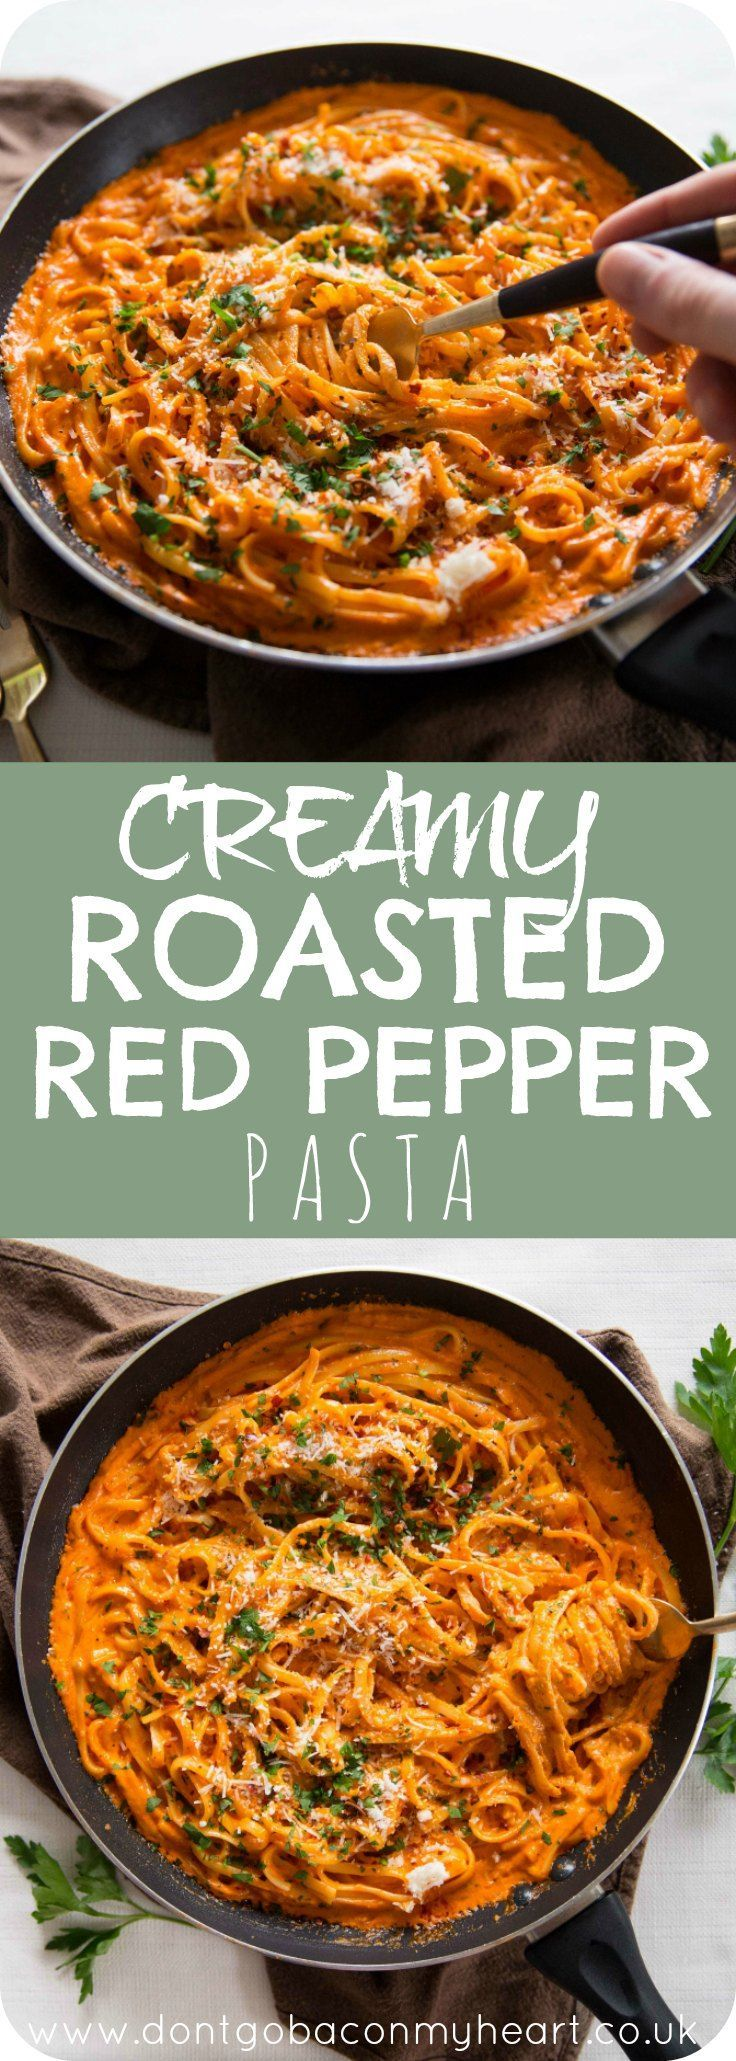 Creamy Roasted Red Pepper Pasta